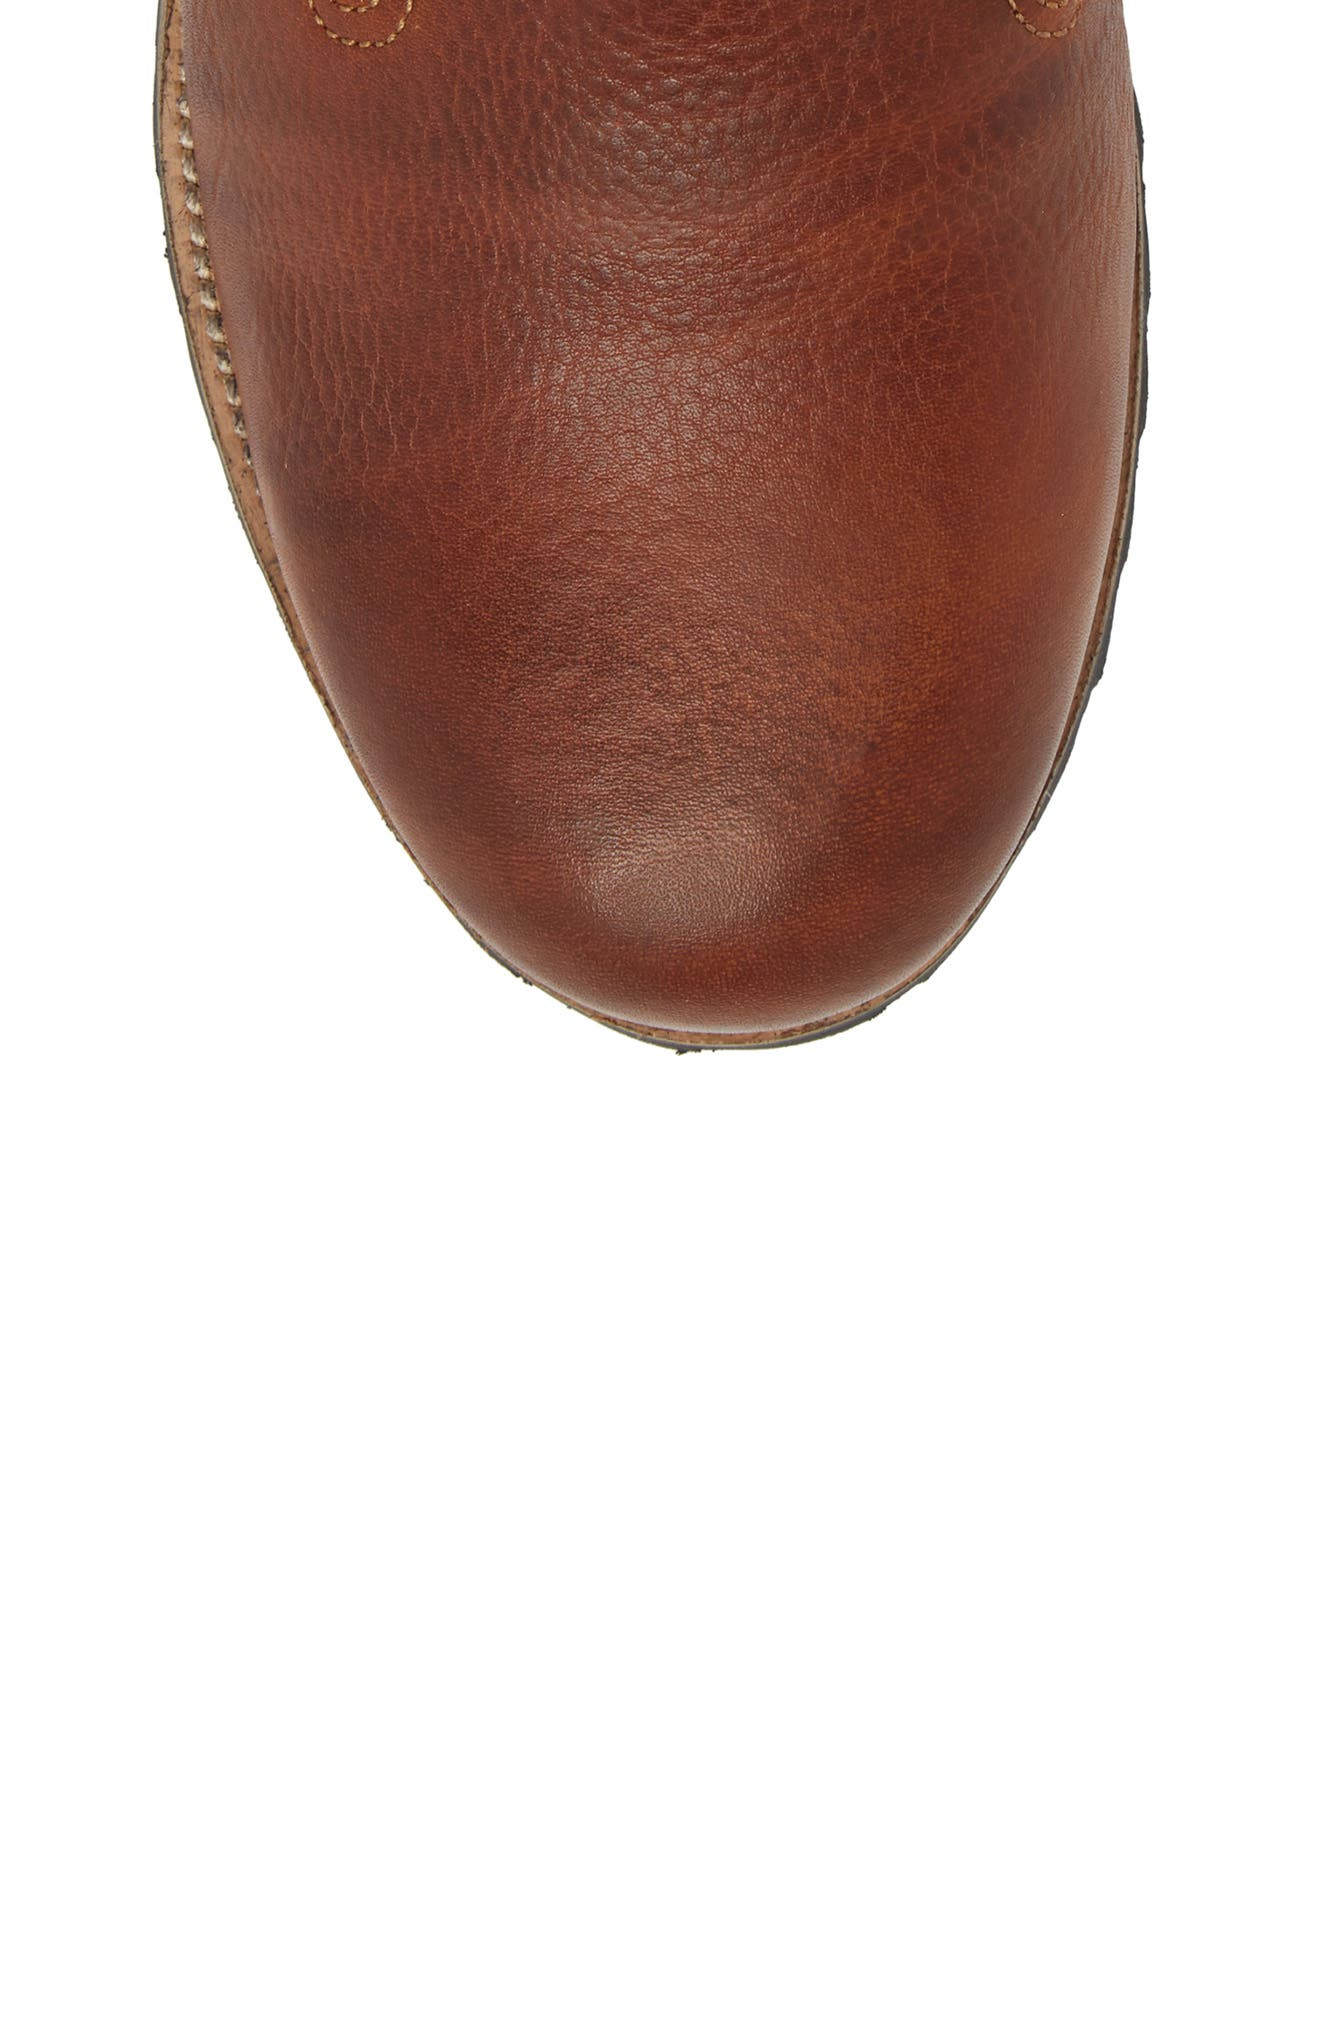 IM 12 Plain Toe Boot with Genuine Shearling,                             Alternate thumbnail 5, color,                             Cuoio Leather